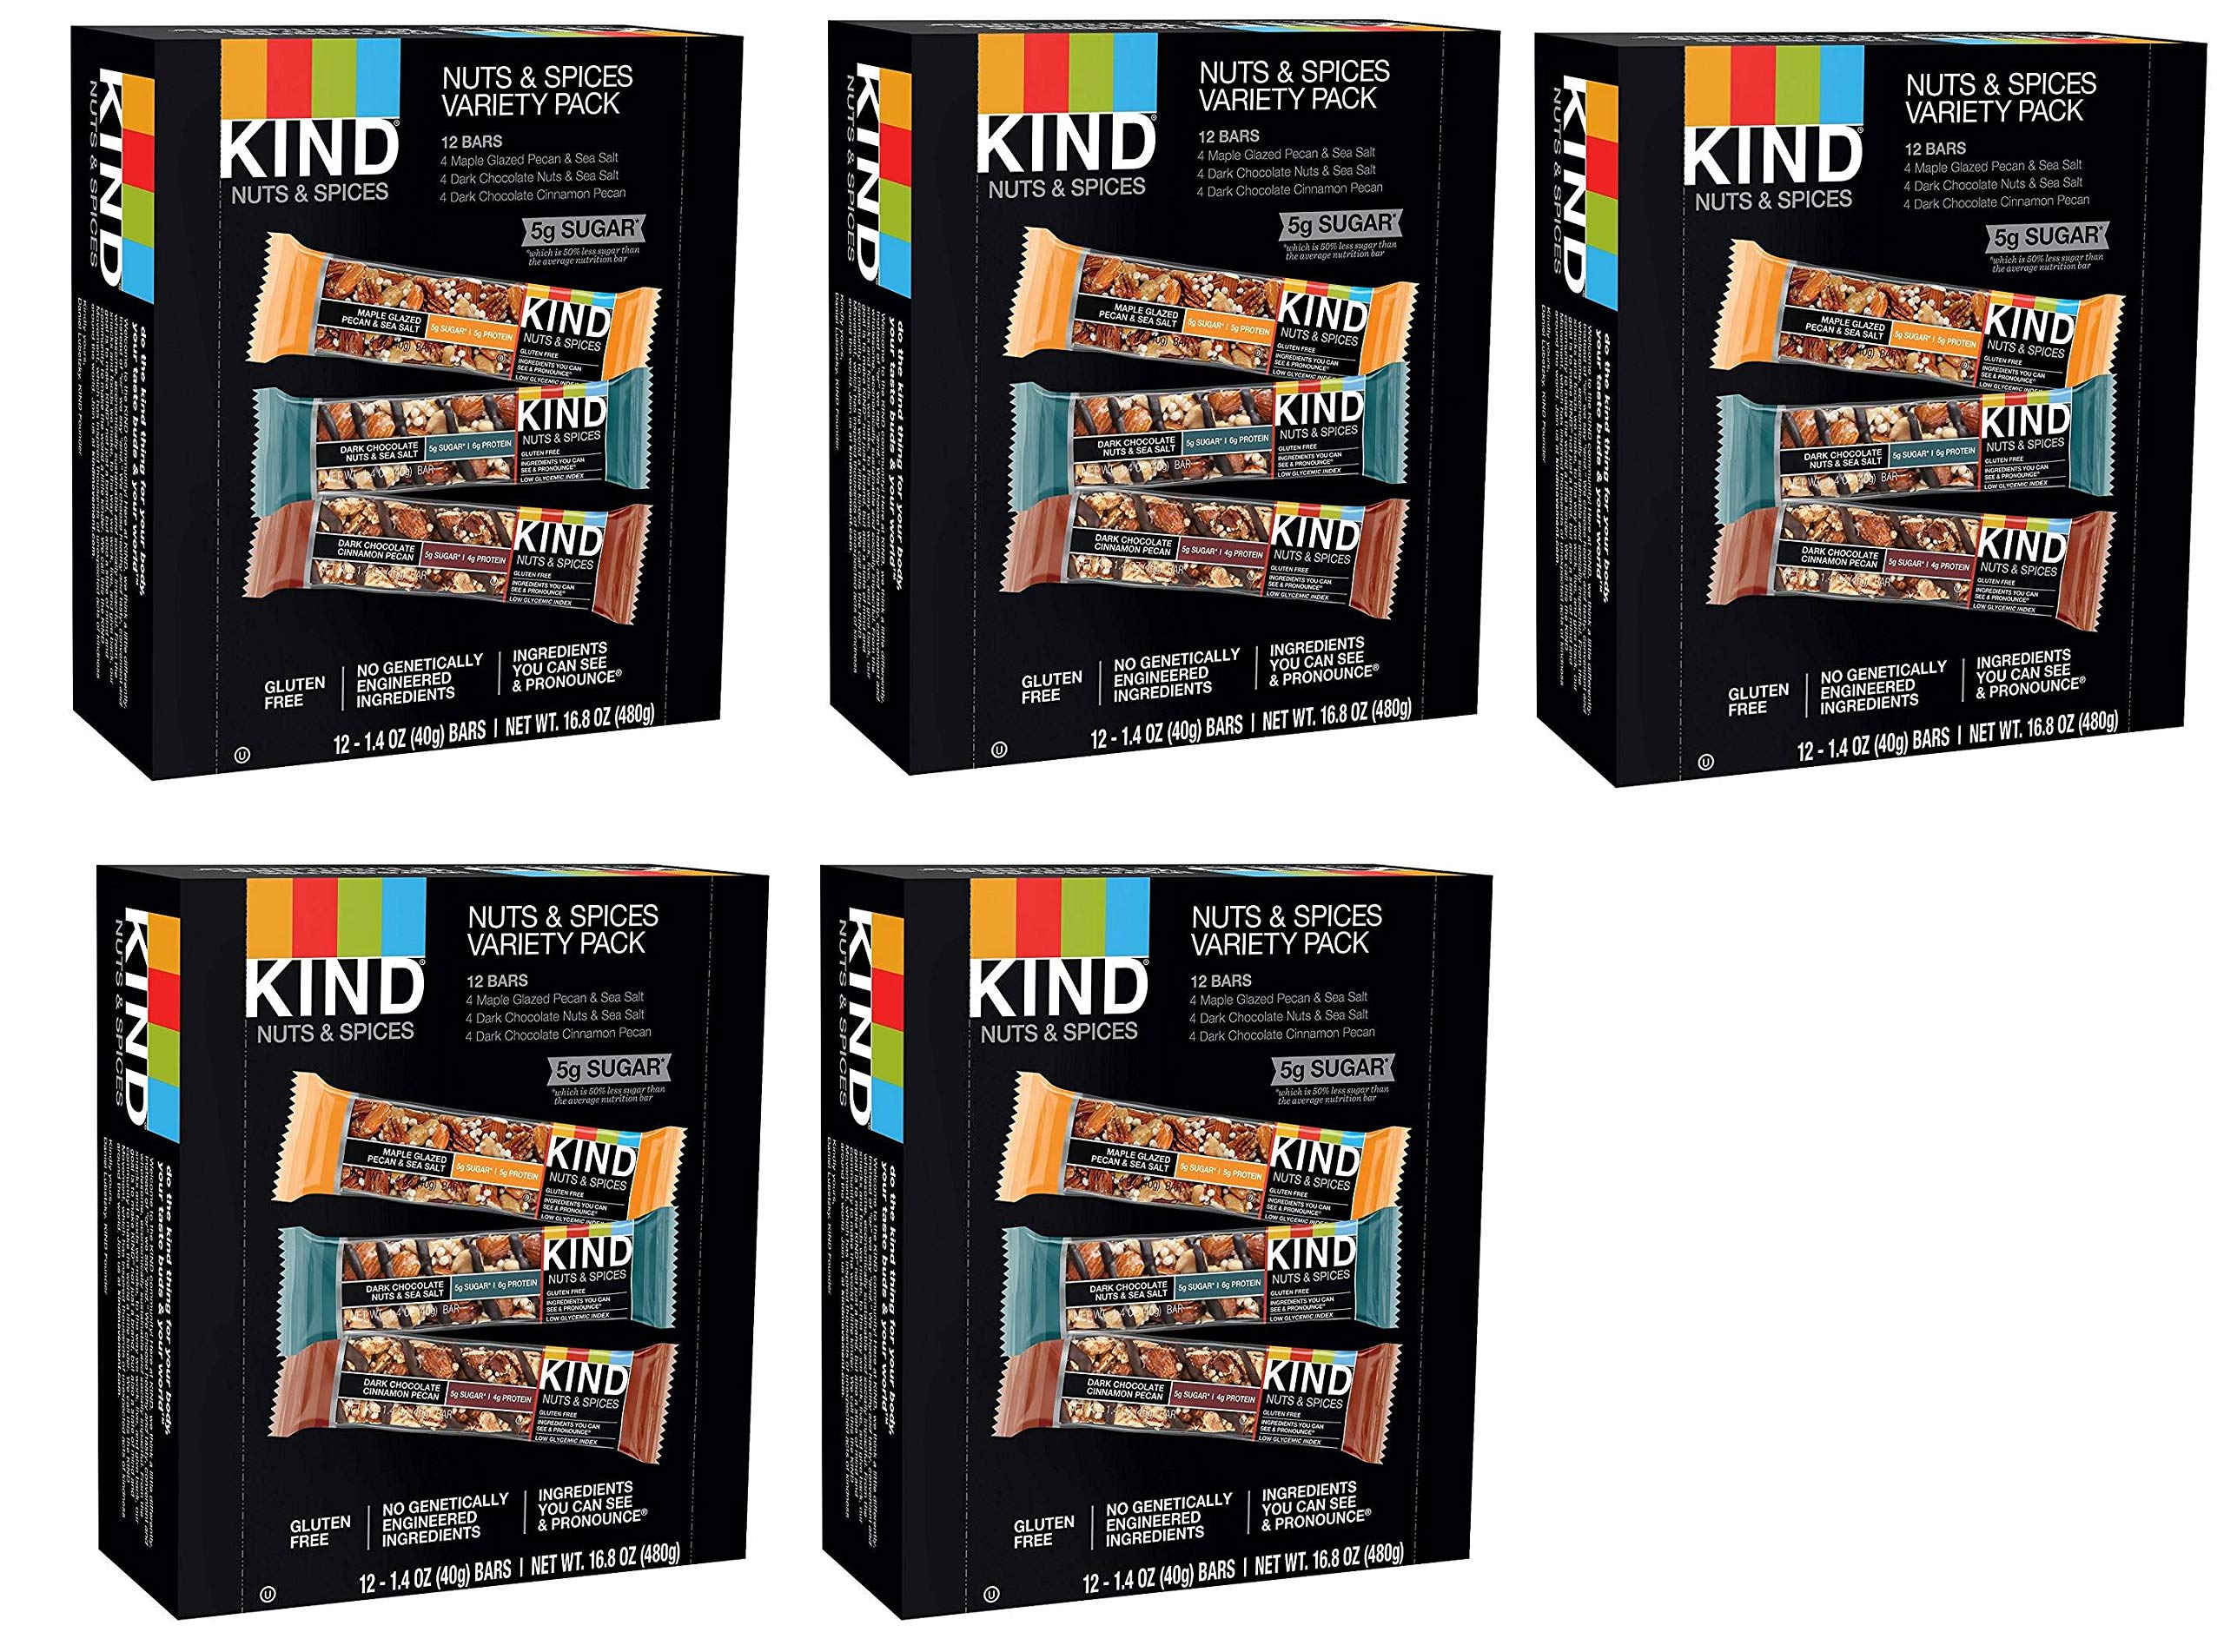 KIND Bars, Nuts and Spices Variety Pack, Gluten Free, 1.4oz (60 Bars)